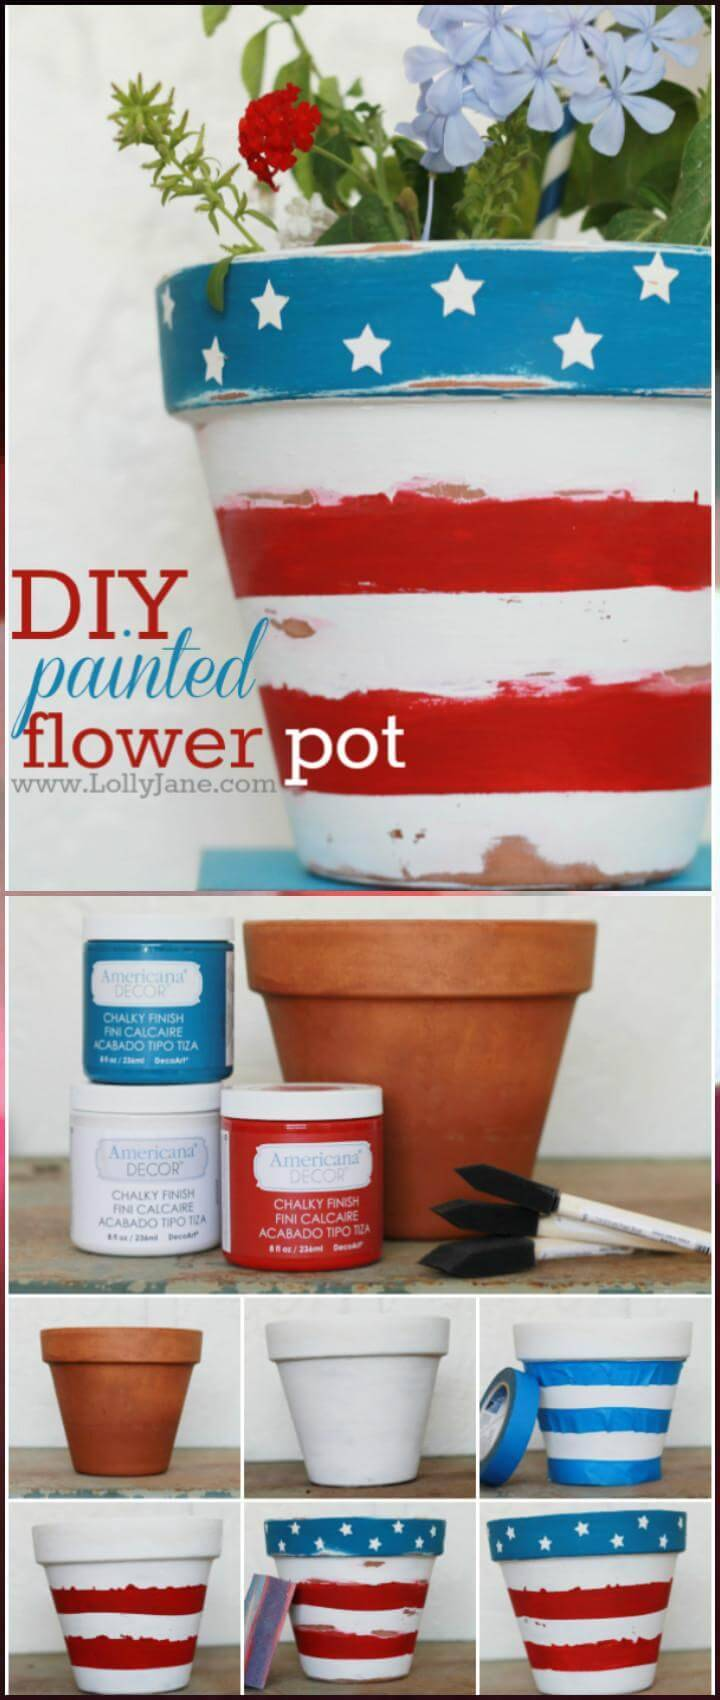 DIY Painted Patriotic Flower Pot